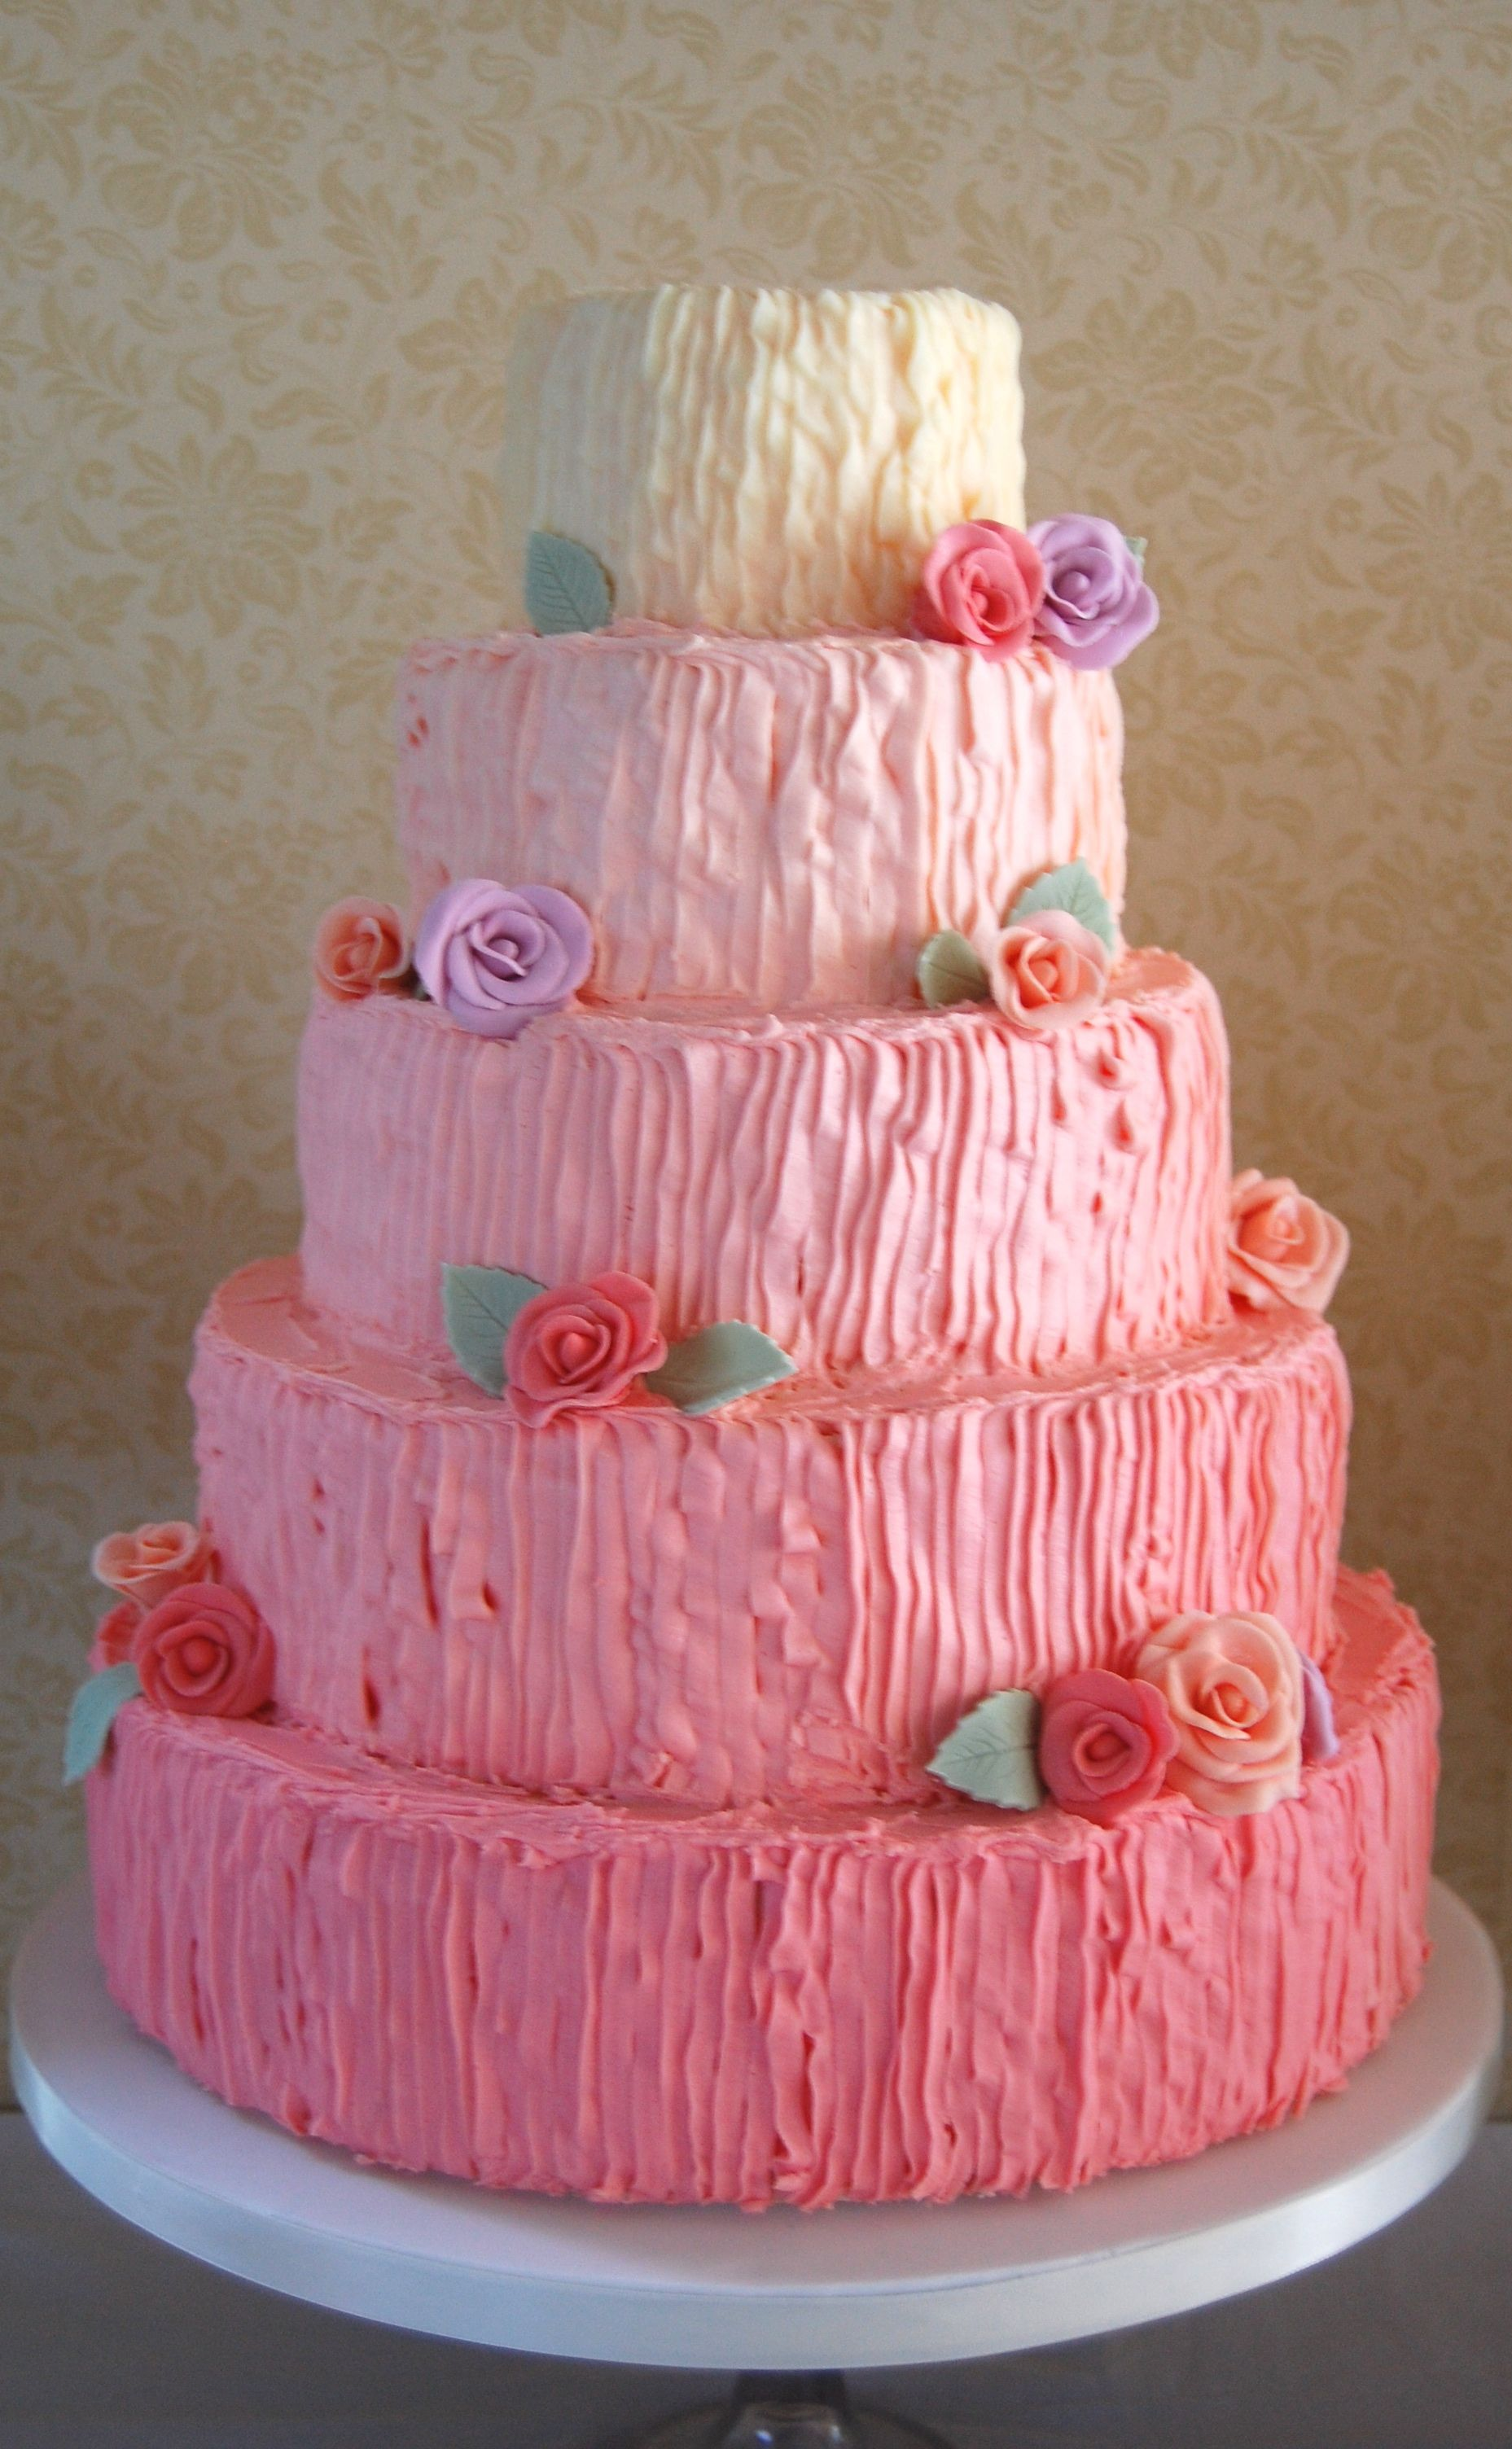 5 Tier Pink Ombre Buttercream Wedding Cake with Icing Roses www ...